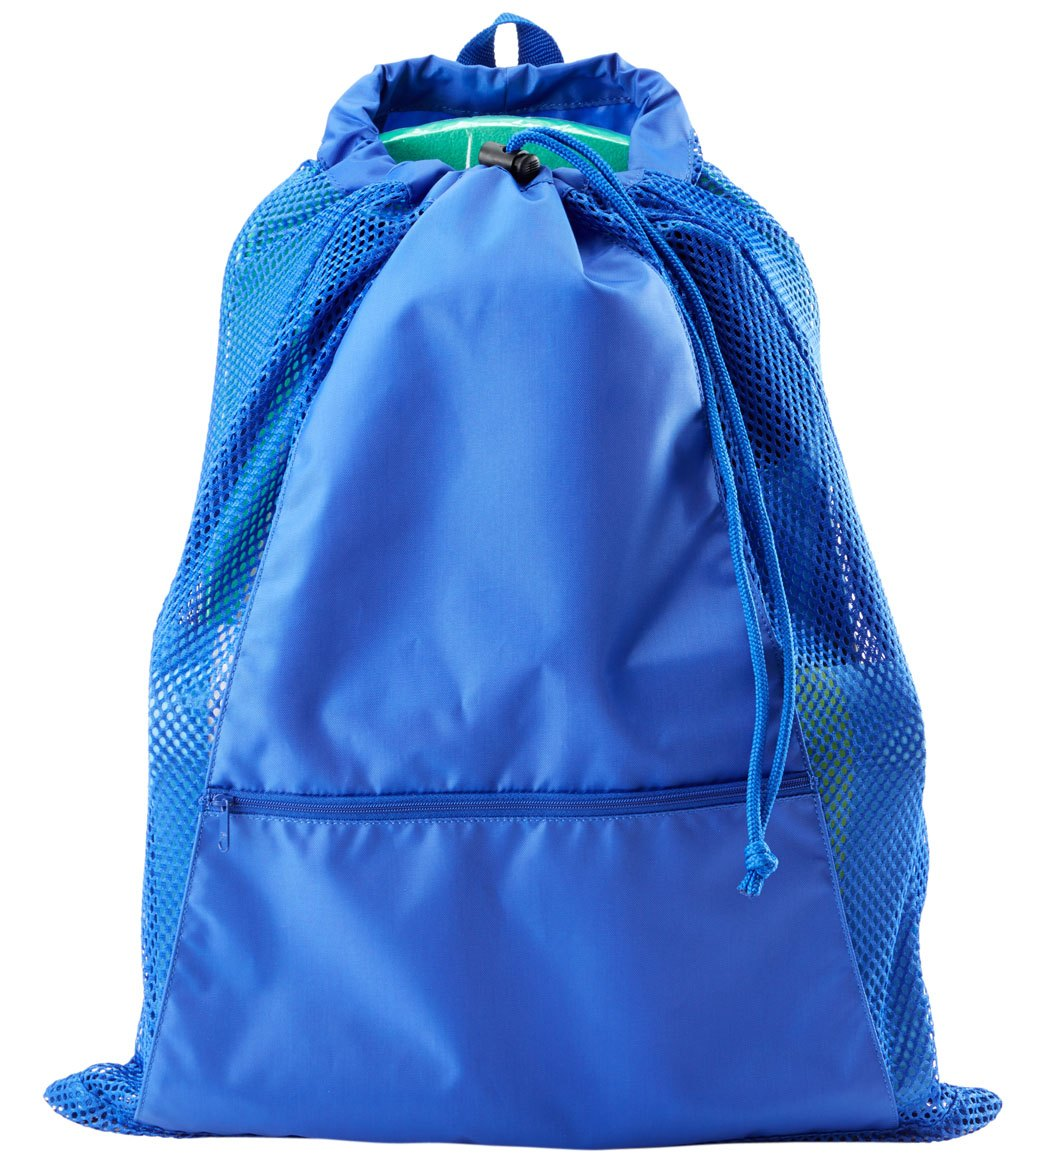 77758a5619 Sporti Premium Color Block Mesh Backpack at SwimOutlet.com